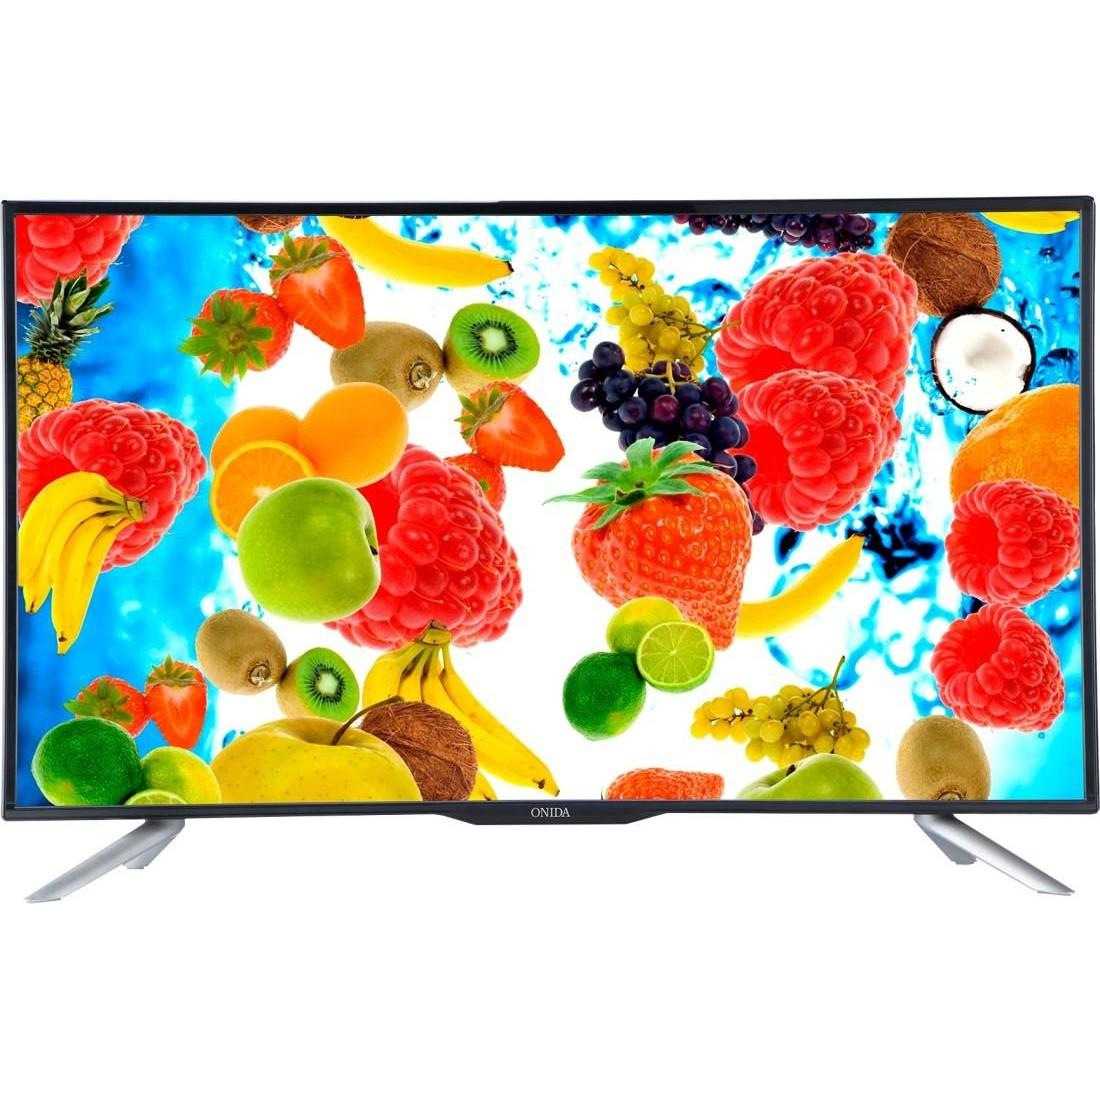 Onida LEO4000F 101.6 cm (40) LED TV (Full HD) Image